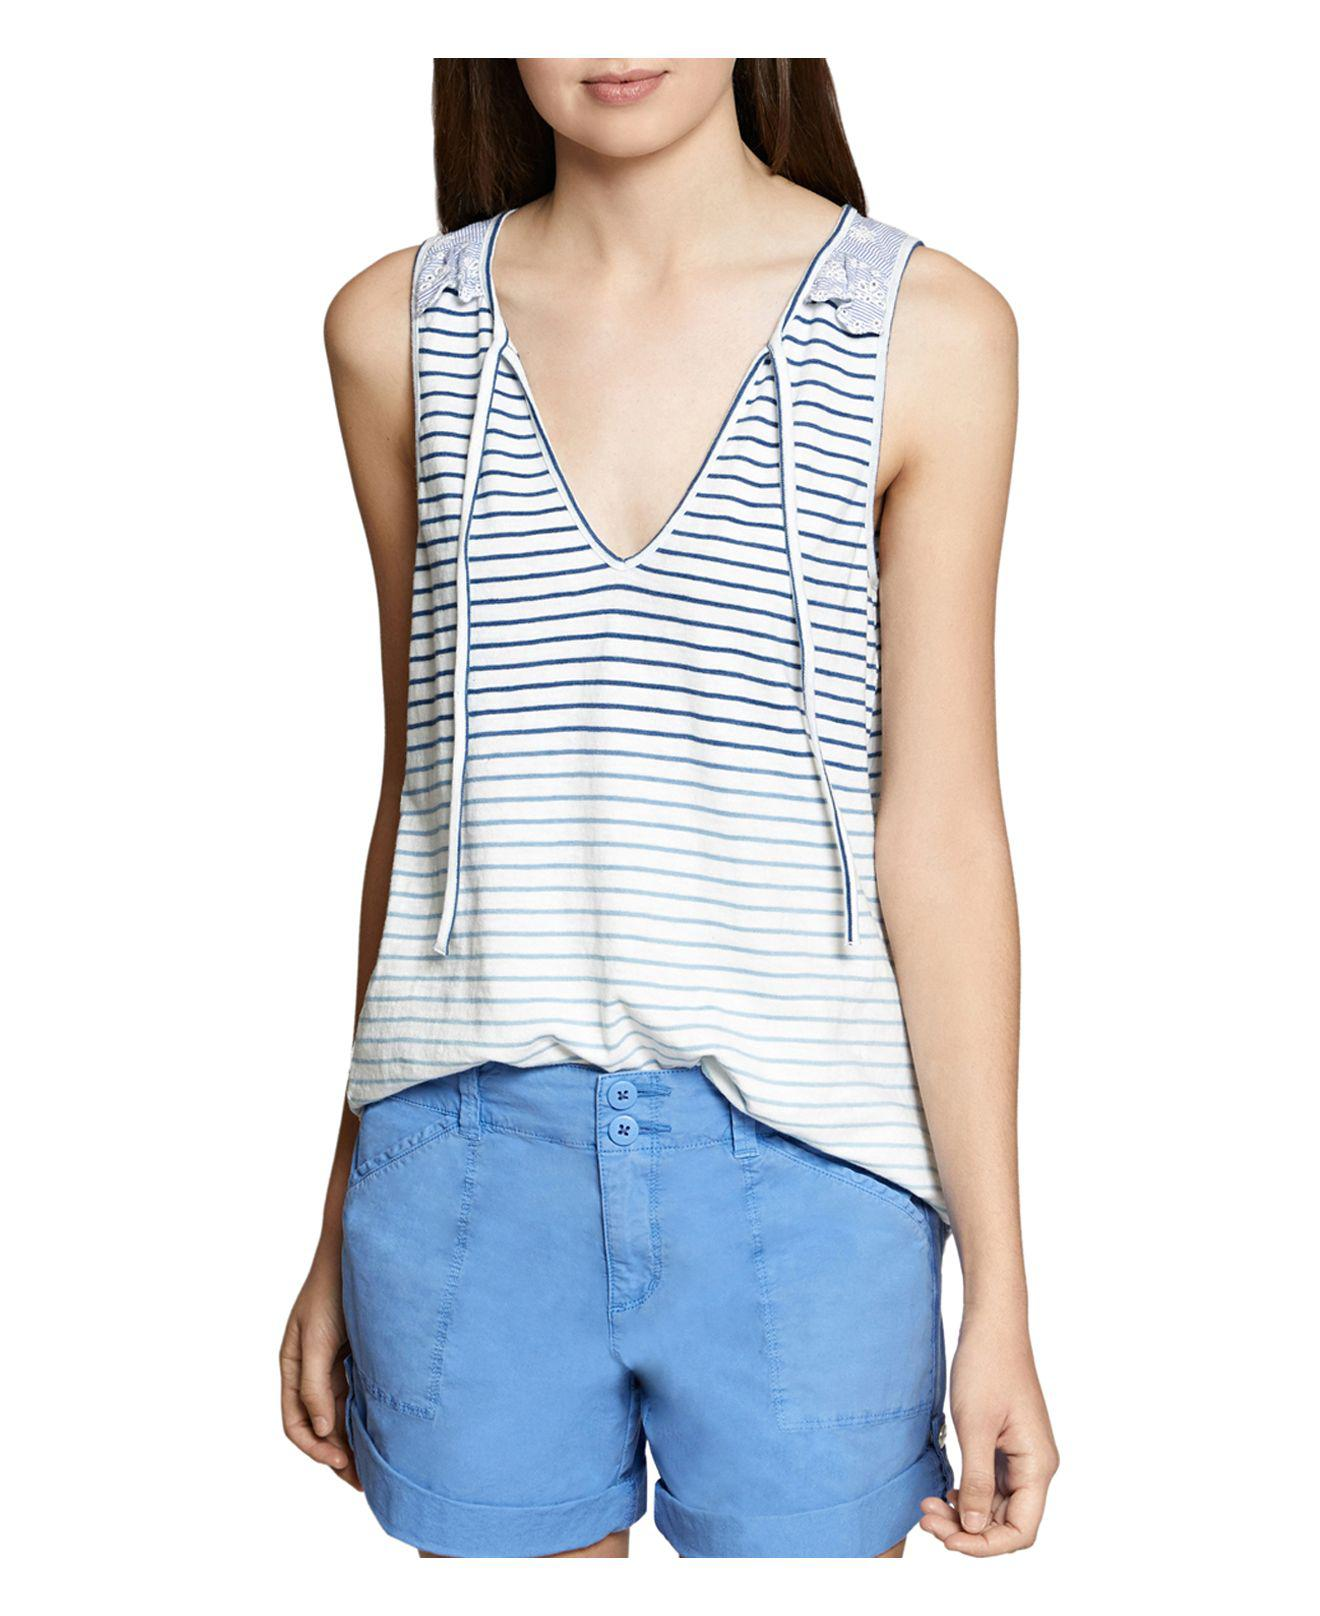 Free Shipping Factory Outlet Cheap Authentic Outlet Sanctuary Leon Eyelet-Trimmed Ombre Striped Tank k0Jbz